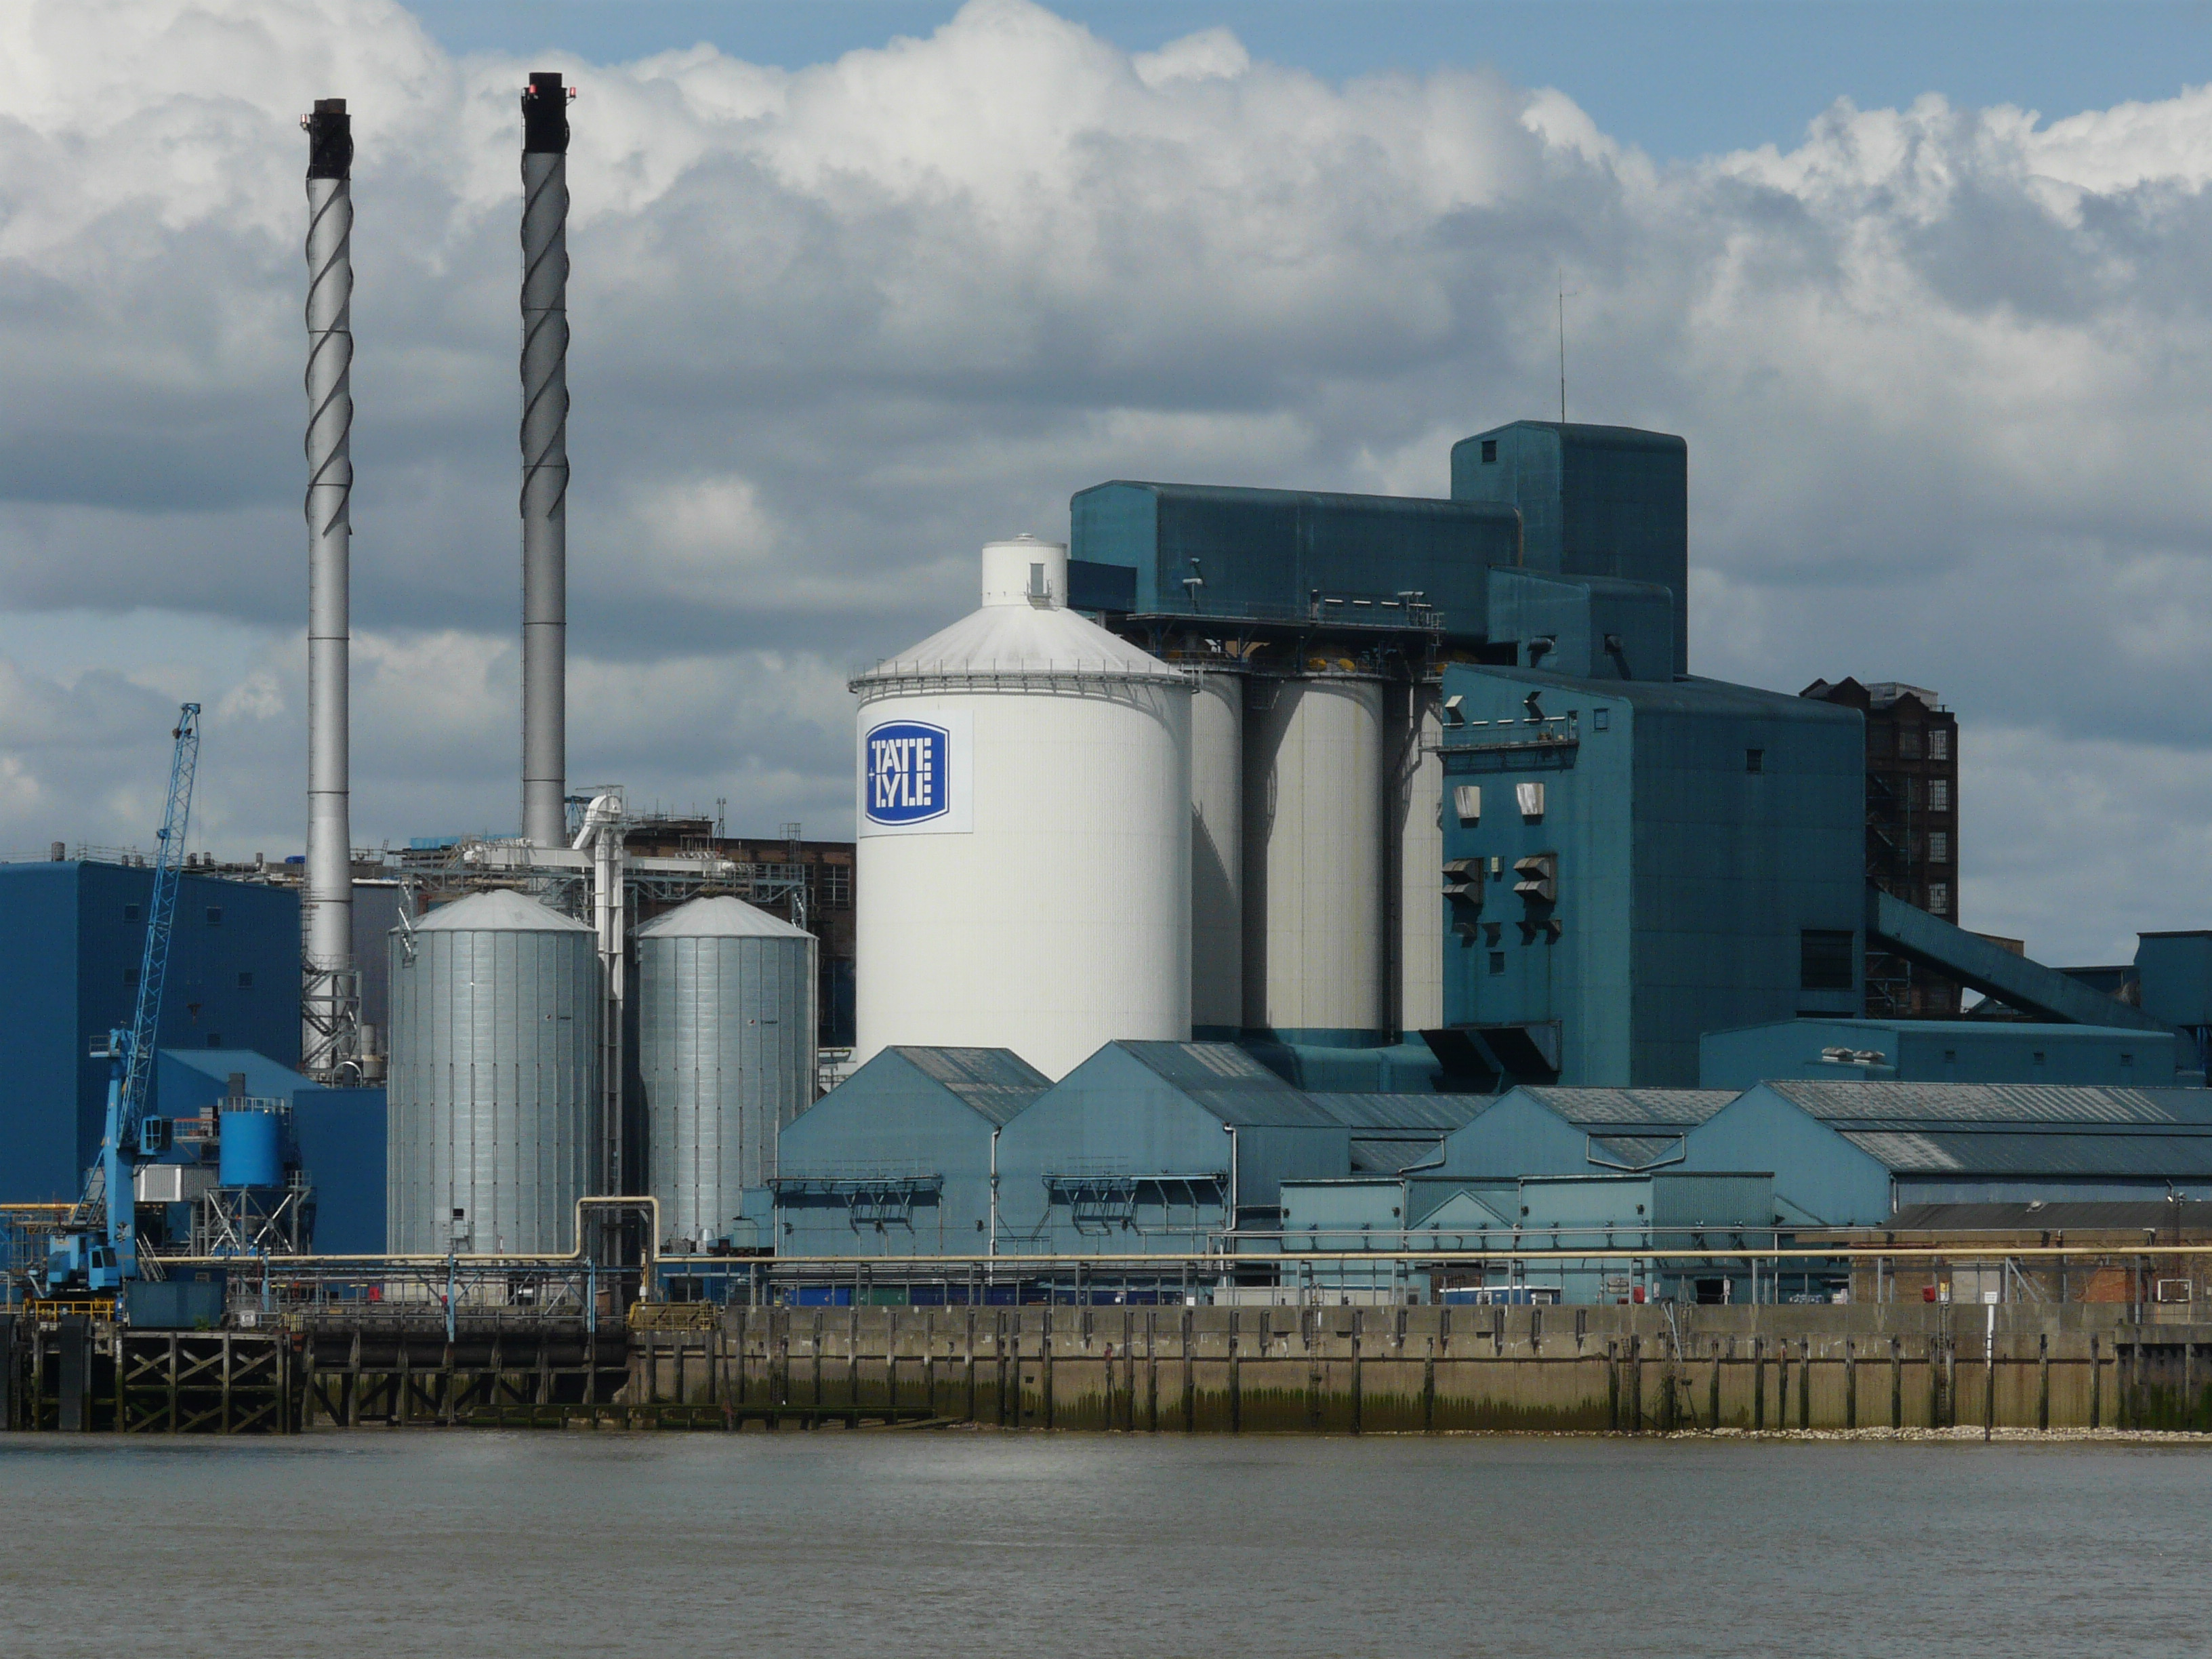 Tate and Lyle sugar refinery